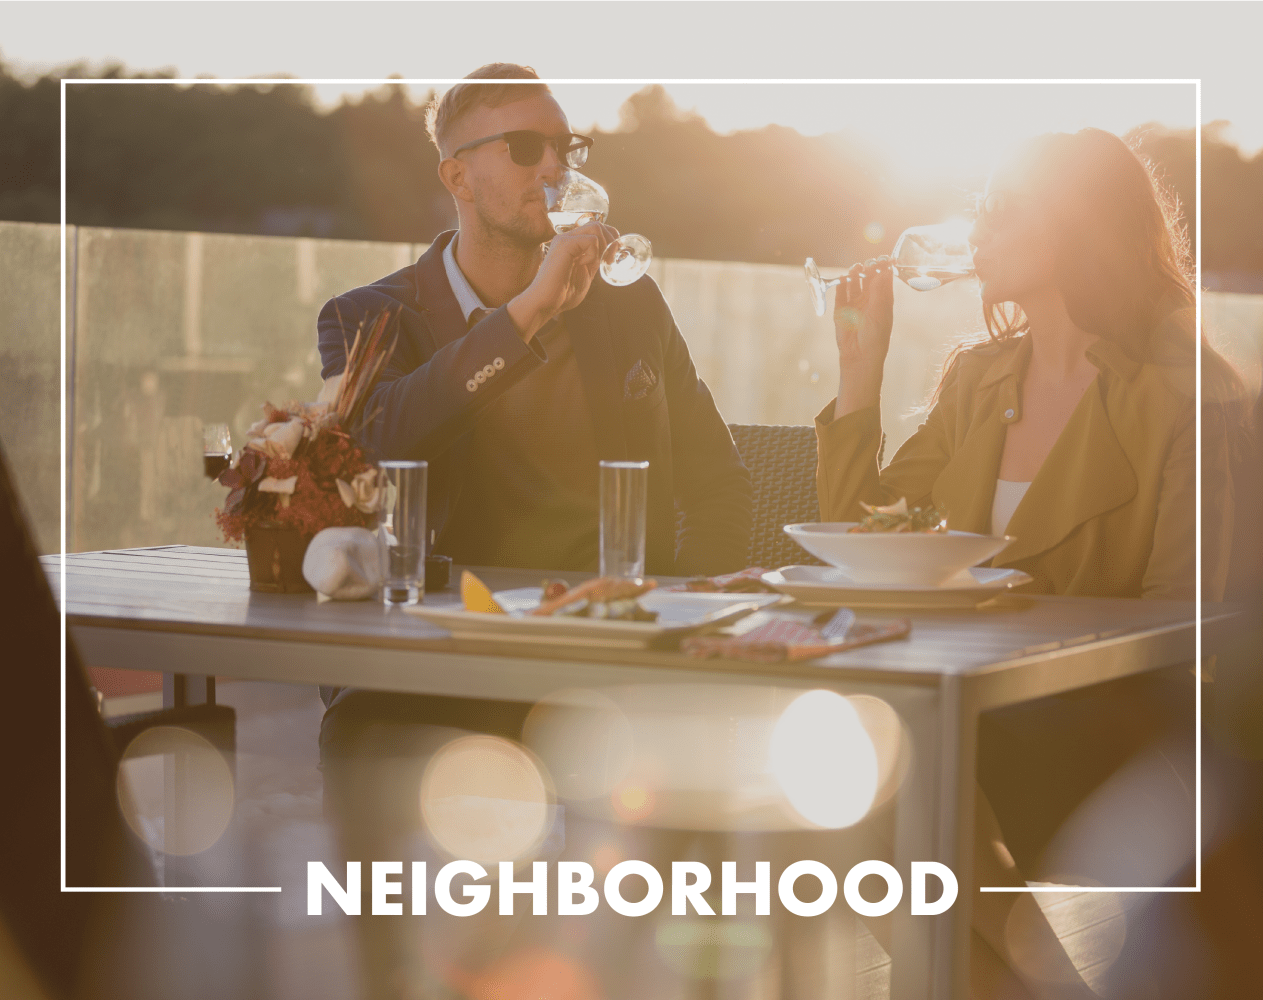 View the neighborhood information near Newport Apartments in Amarillo, Texas